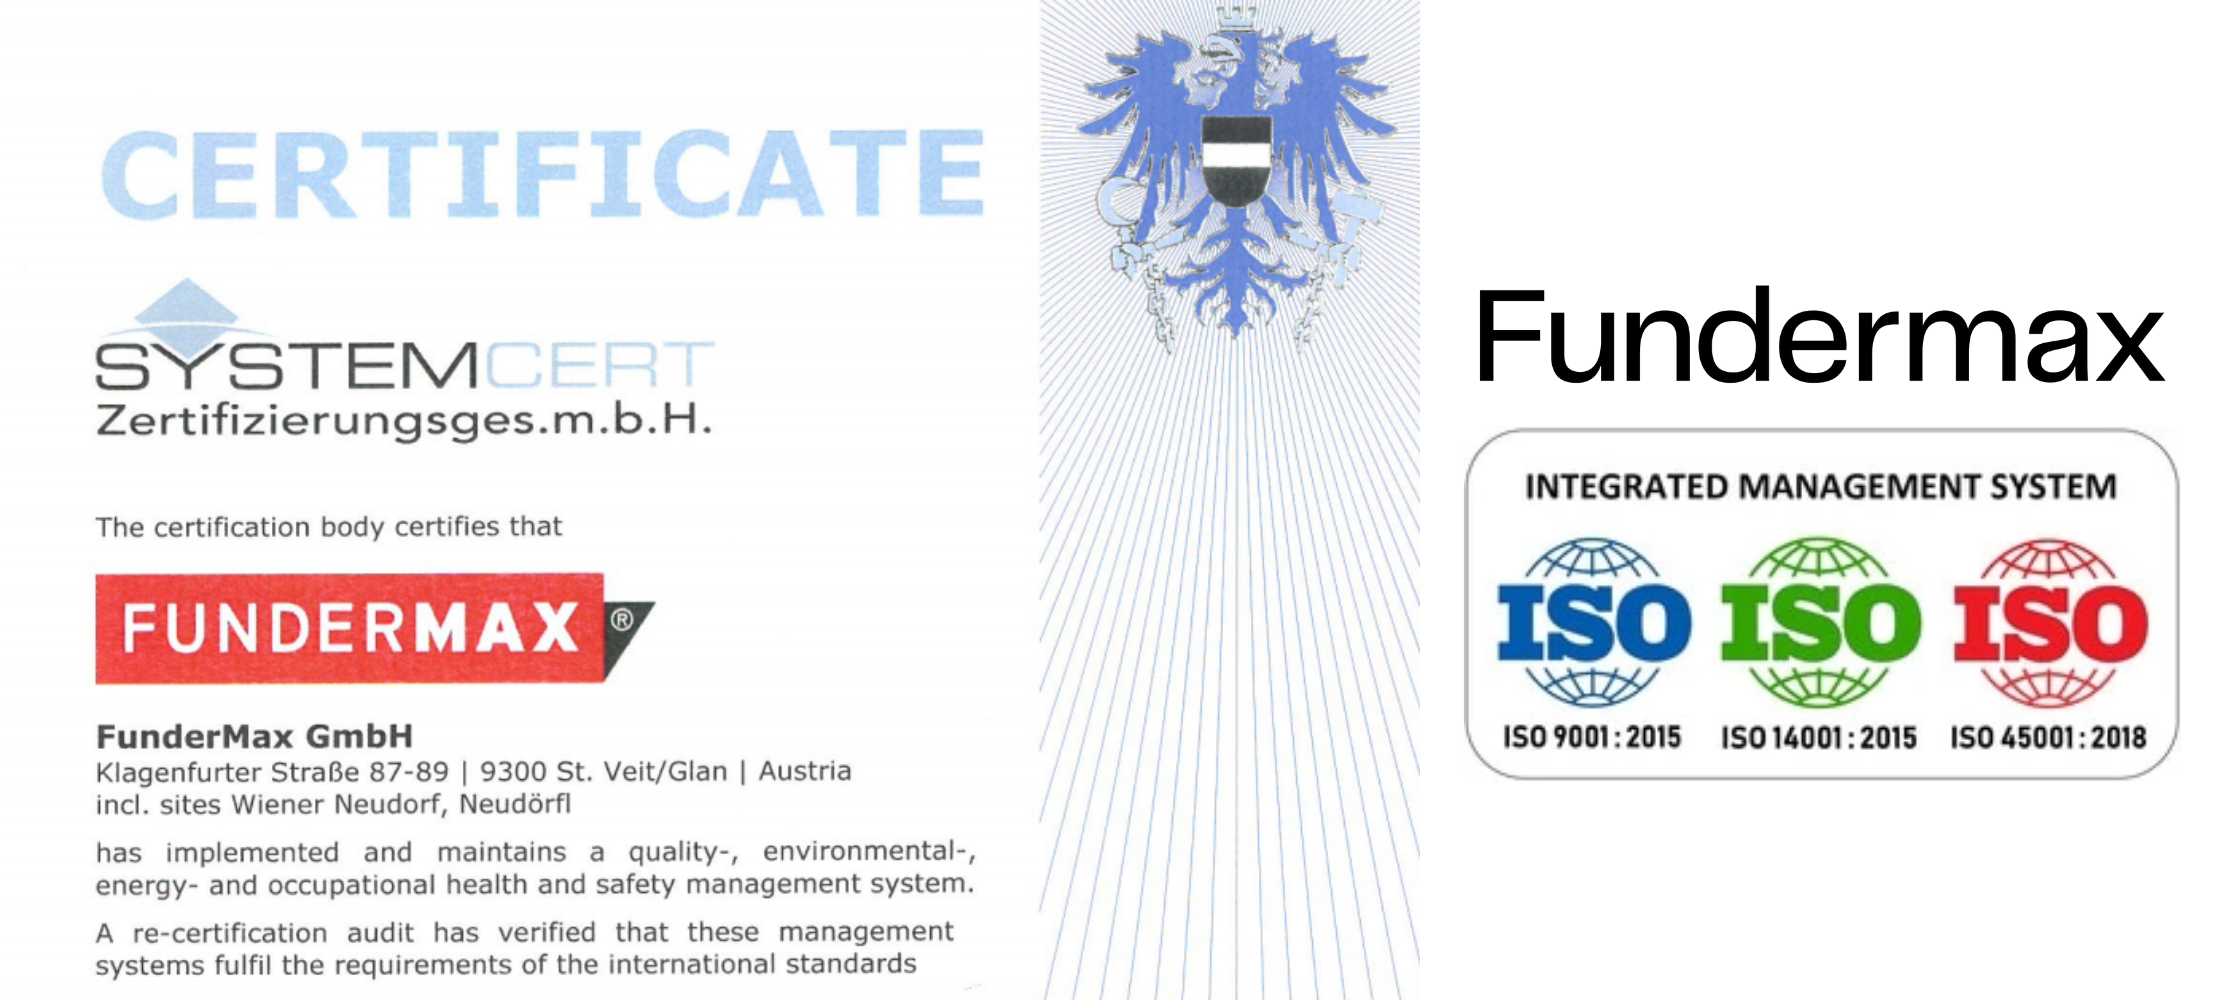 Four Important ISO Certifications & Why They Matter